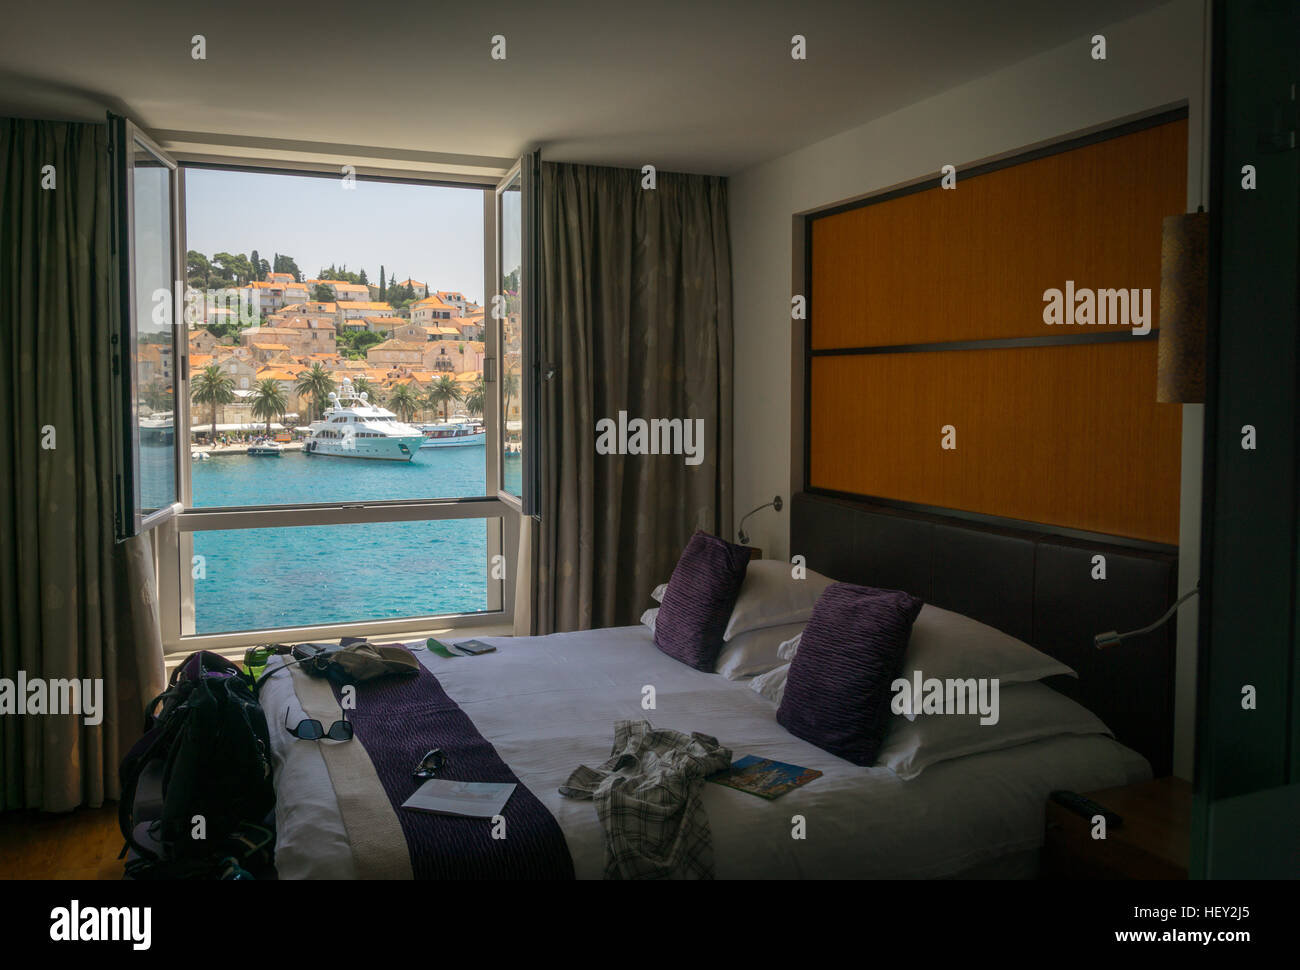 Looking out a window onto the beautiful port of Hvar Town, on the island of Hvar in Croatia, with a bed with suitcase, - Stock Image